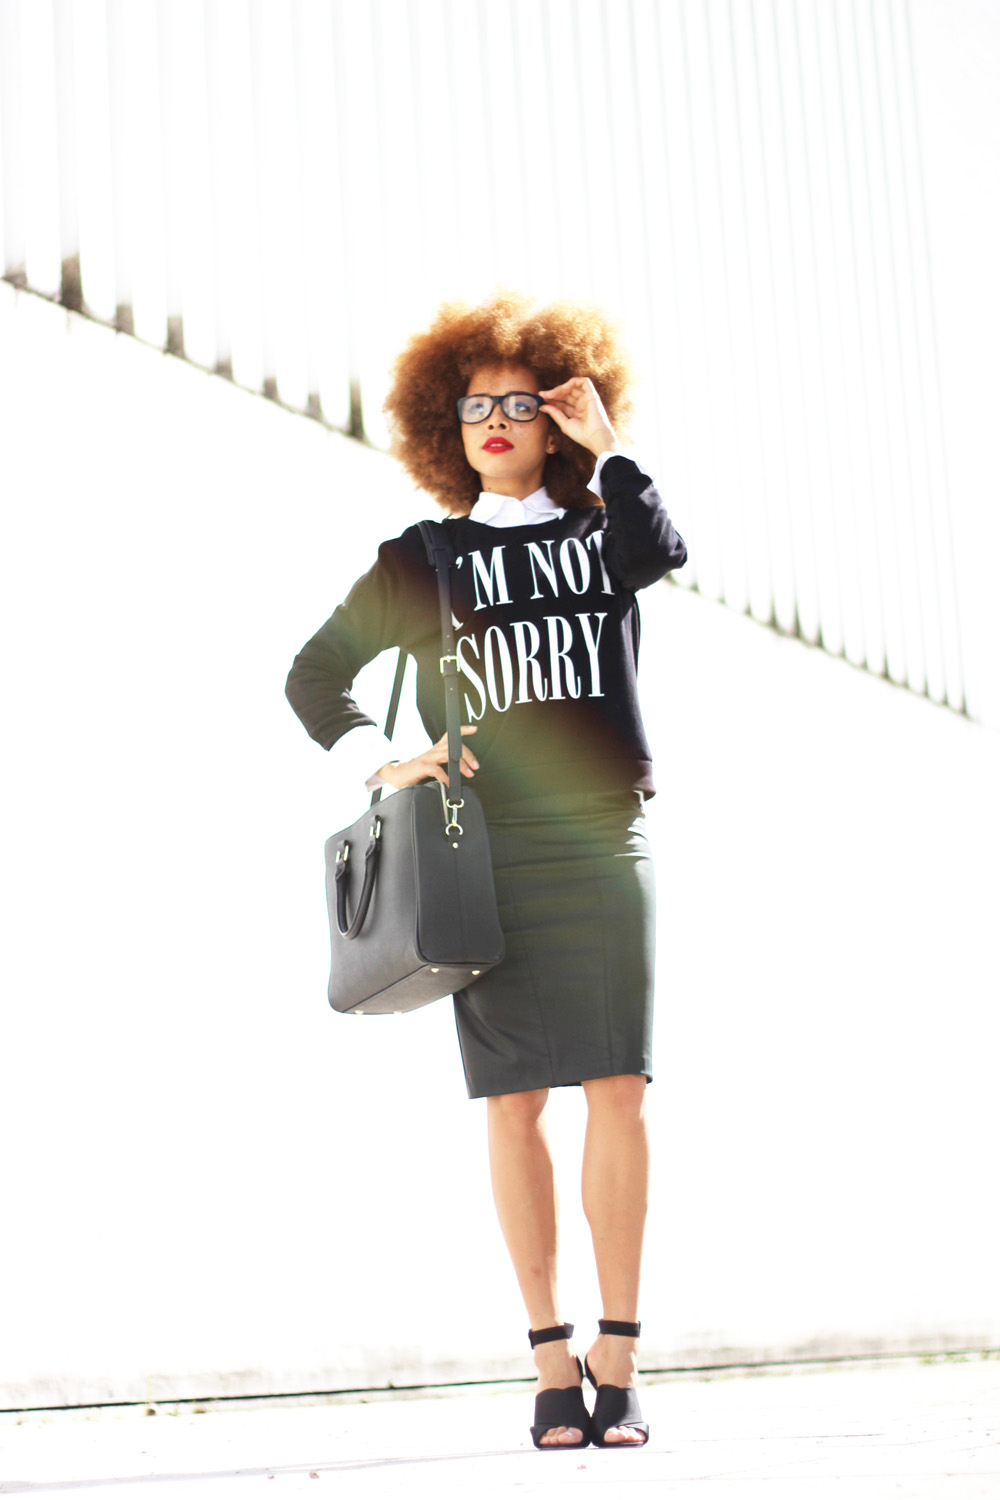 fatimayarie-afro-college-streetstyle-redcurls-notsorry-print-sweater-img_2526